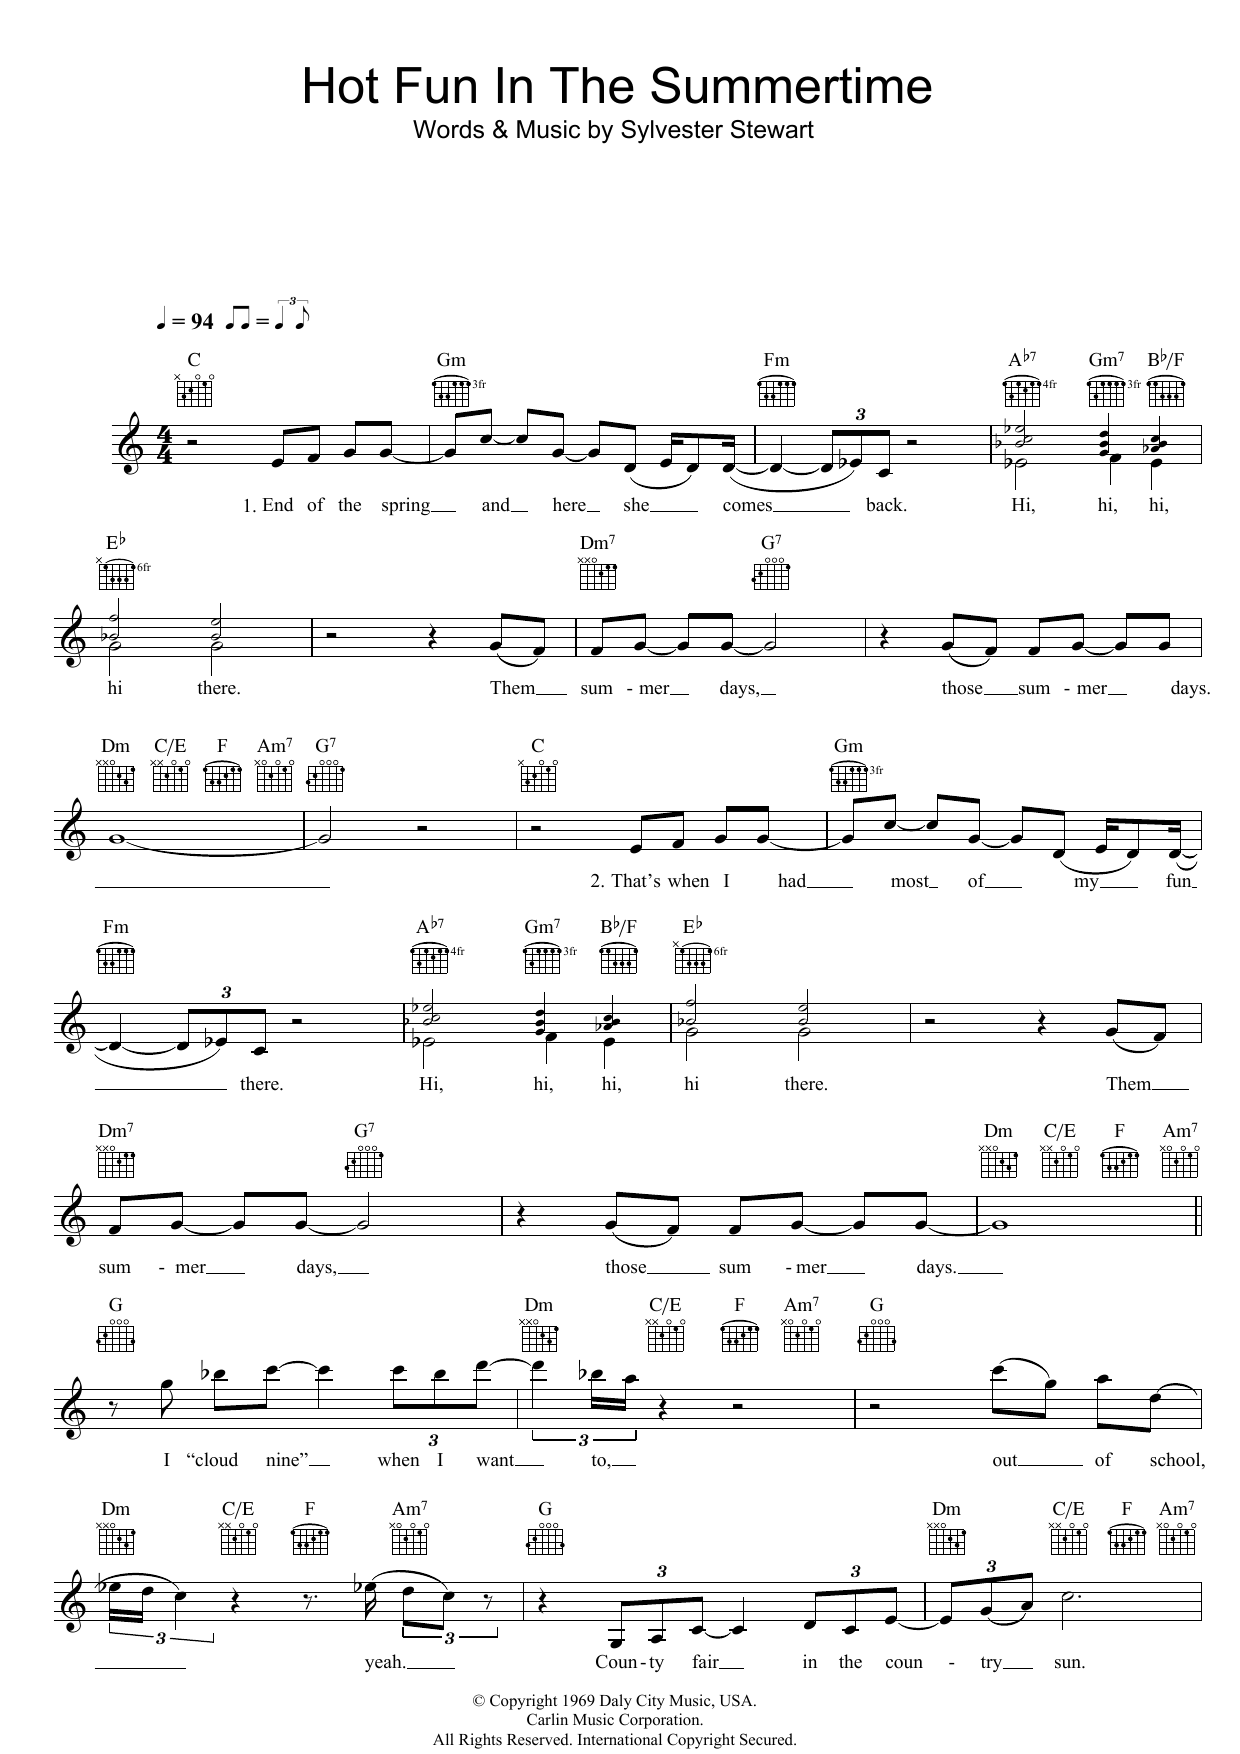 Hot Fun In The Summertime | Sheet Music Direct